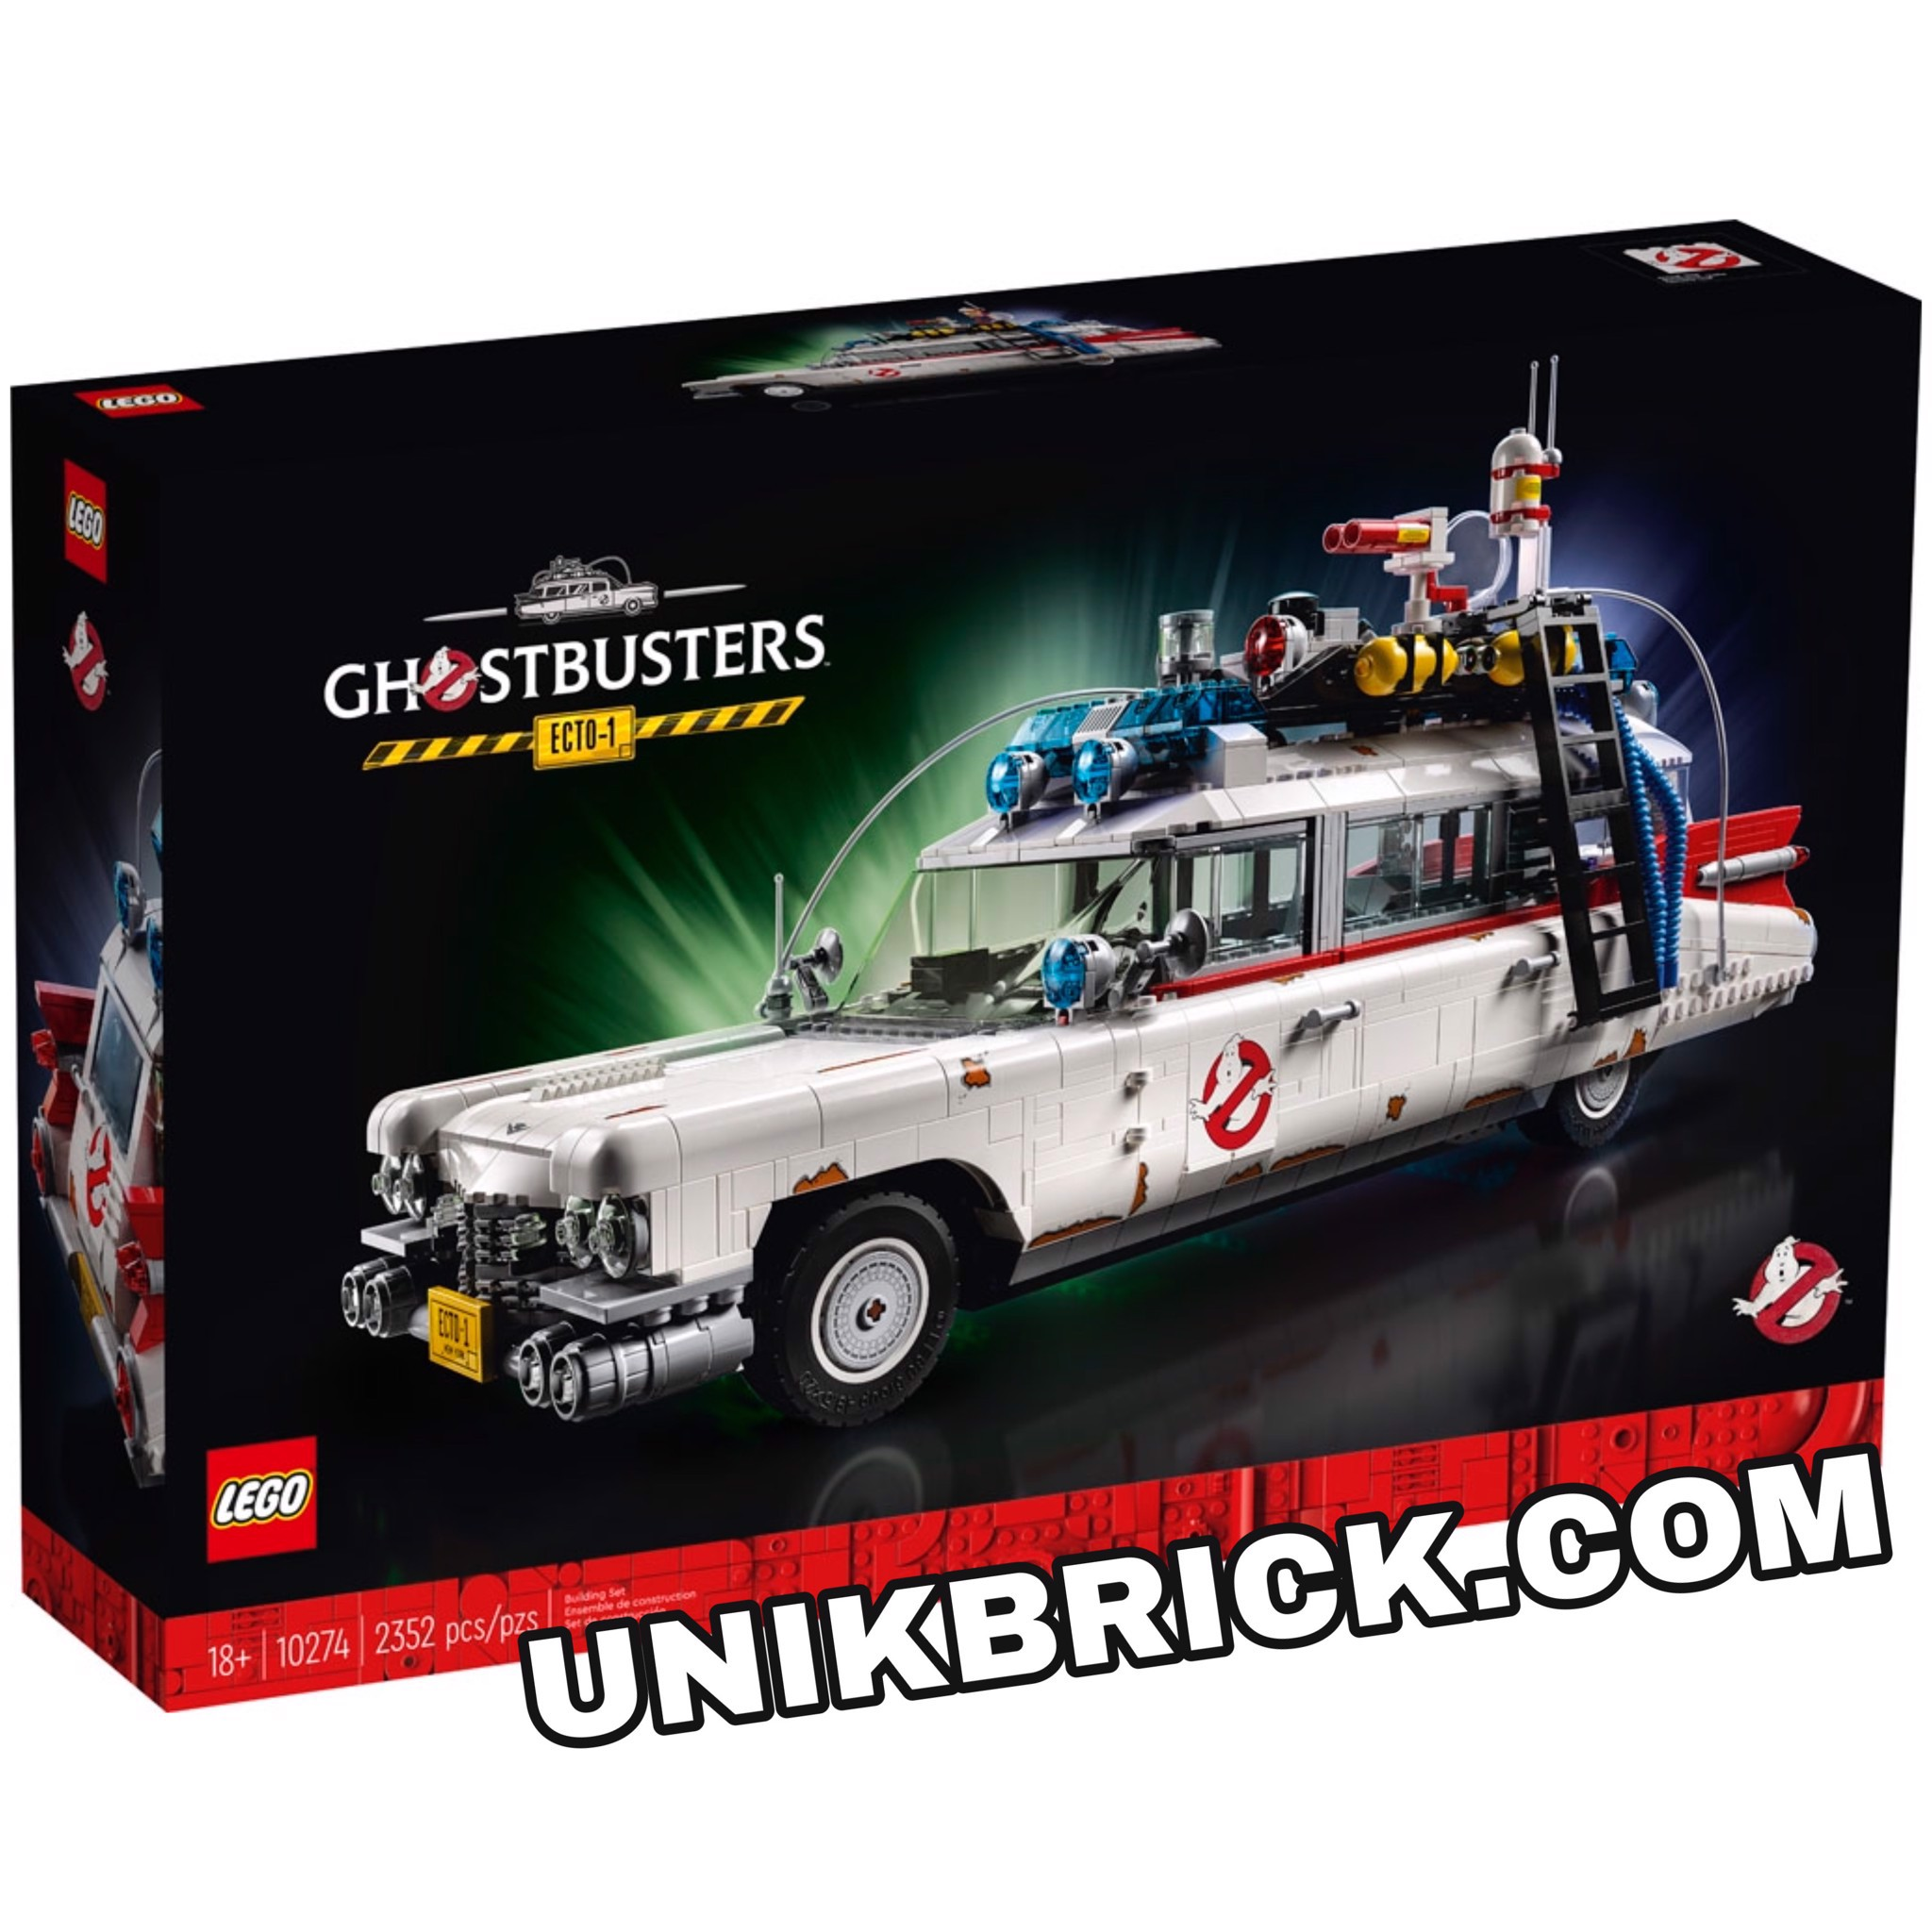 [HÀNG ĐẶT/ ORDER] LEGO Creator 10274 Ghostbusters ECTO-1